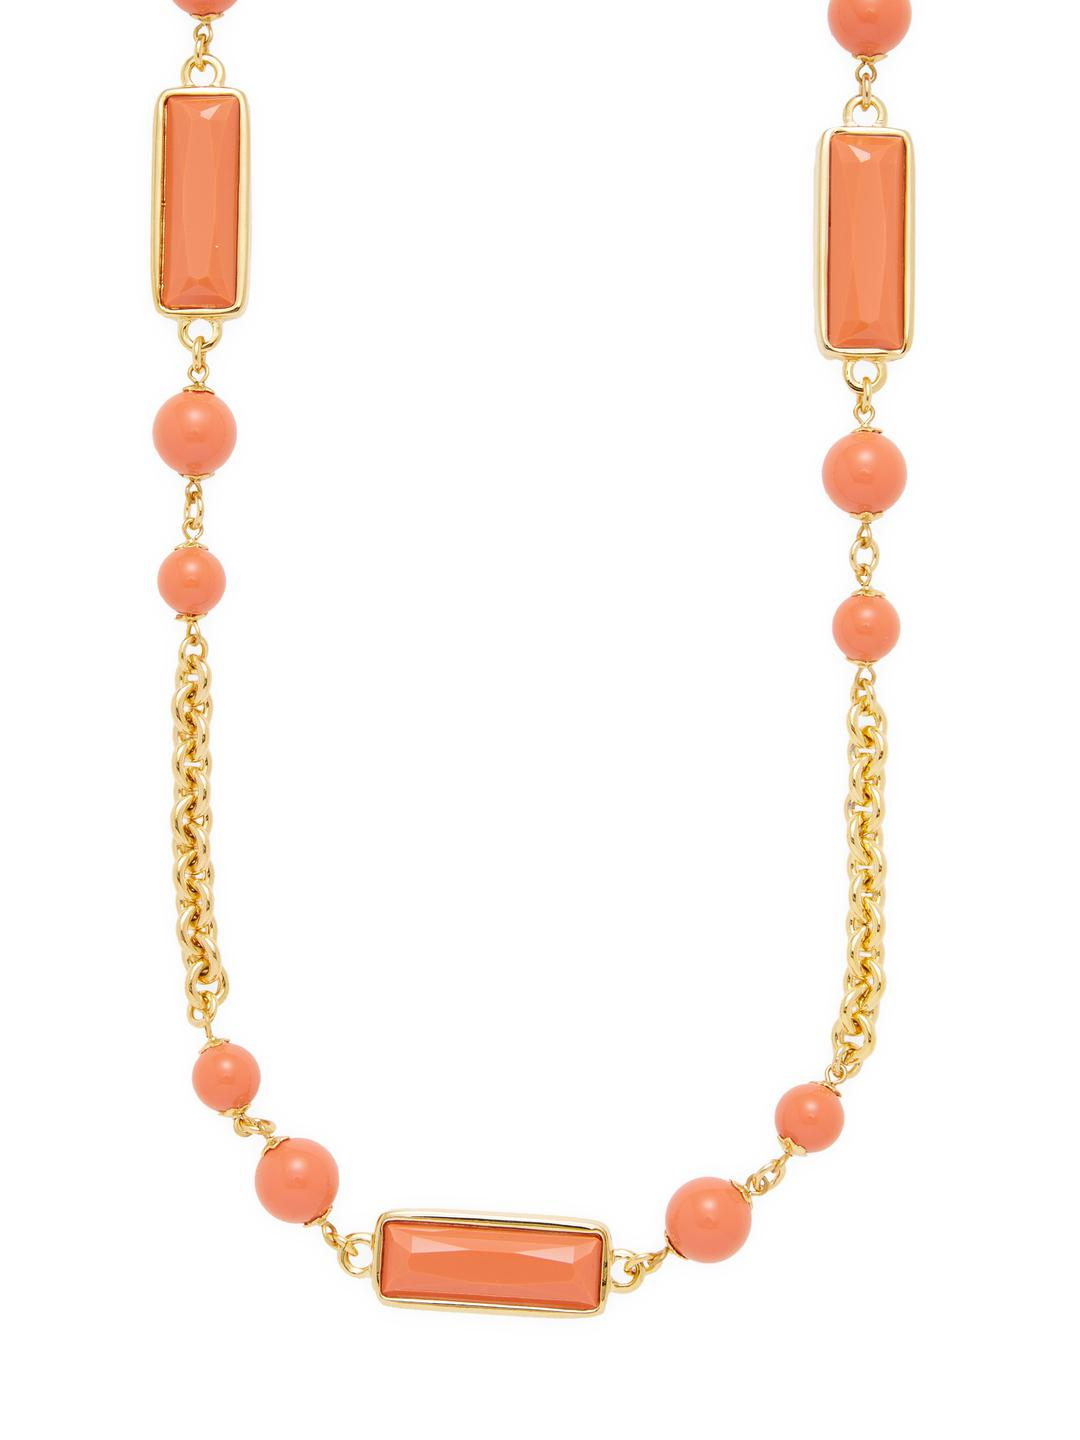 Kenneth Jay Lane Gold And Medium Coral Bib Necklace Medium coral ga5iVTf